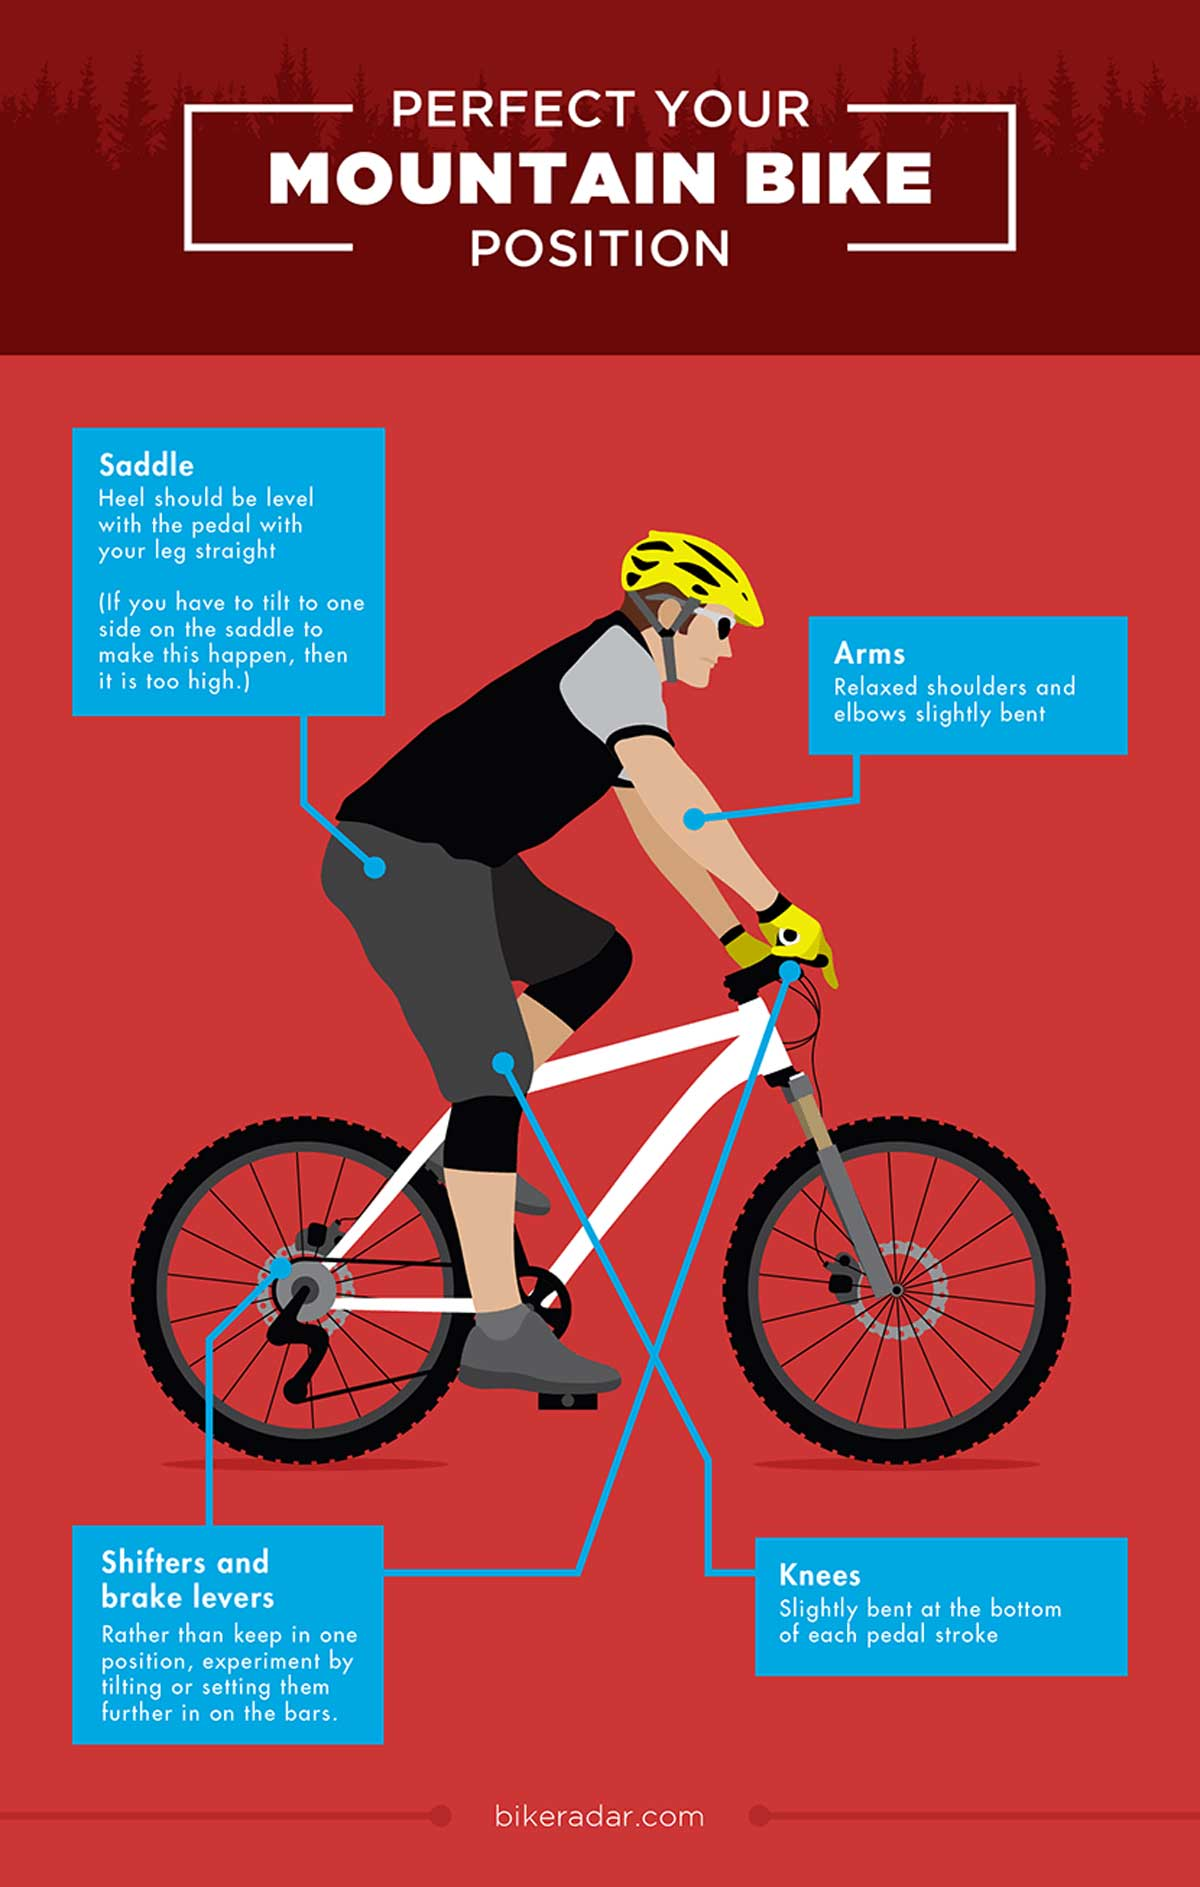 Getting Started With Mountain Biking Guide